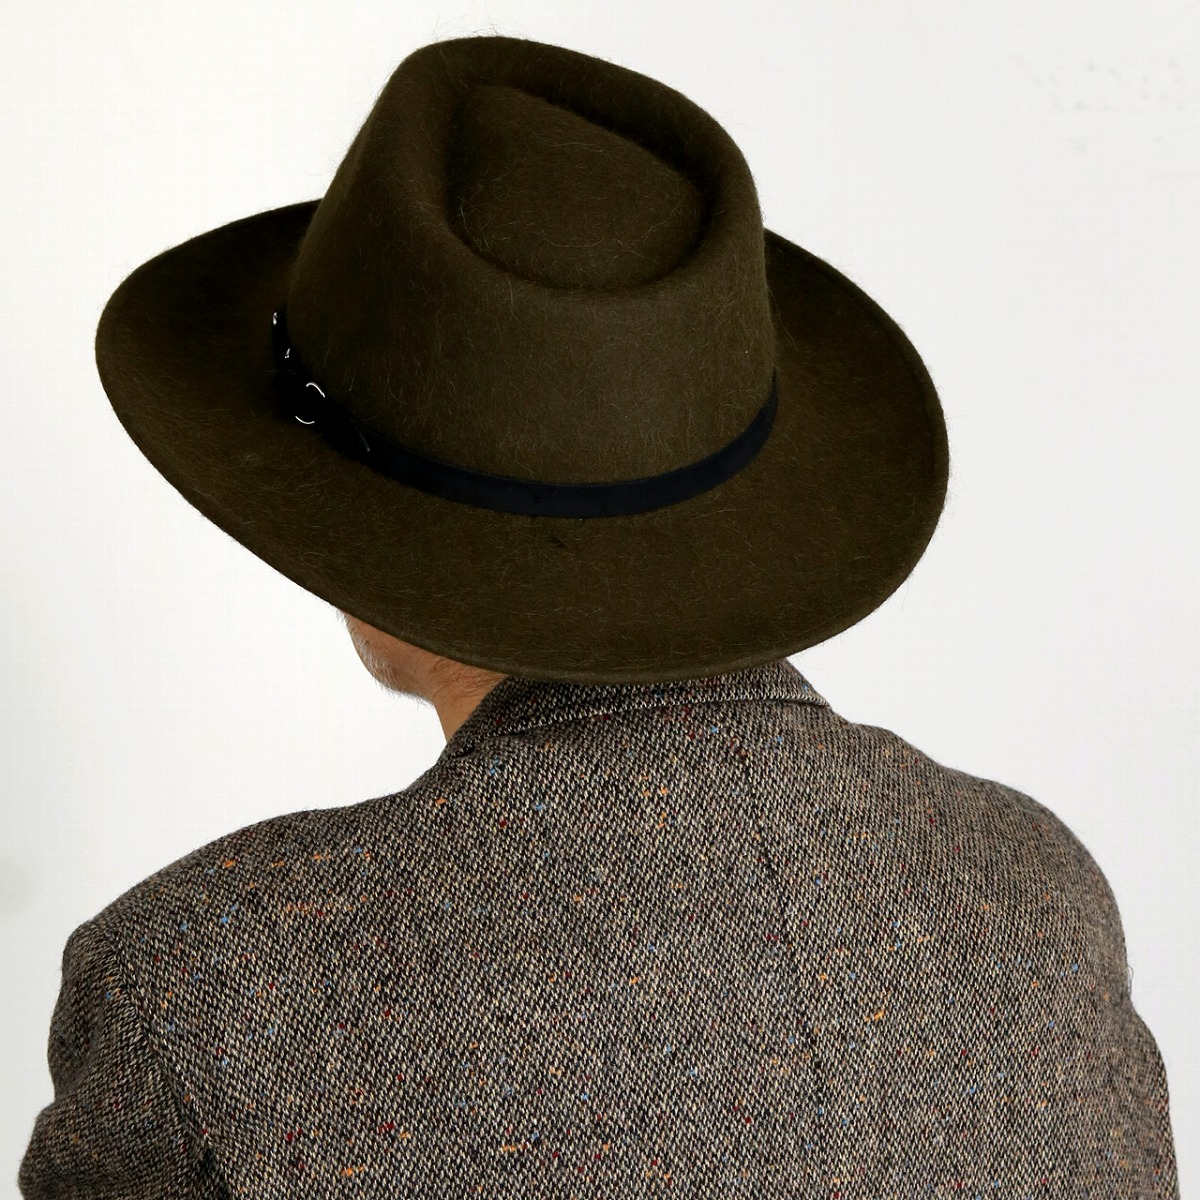 60ccd2cecf6 ... Suede belt khaki  fedora  stetson hat mail order man hat Christmas gift  present with